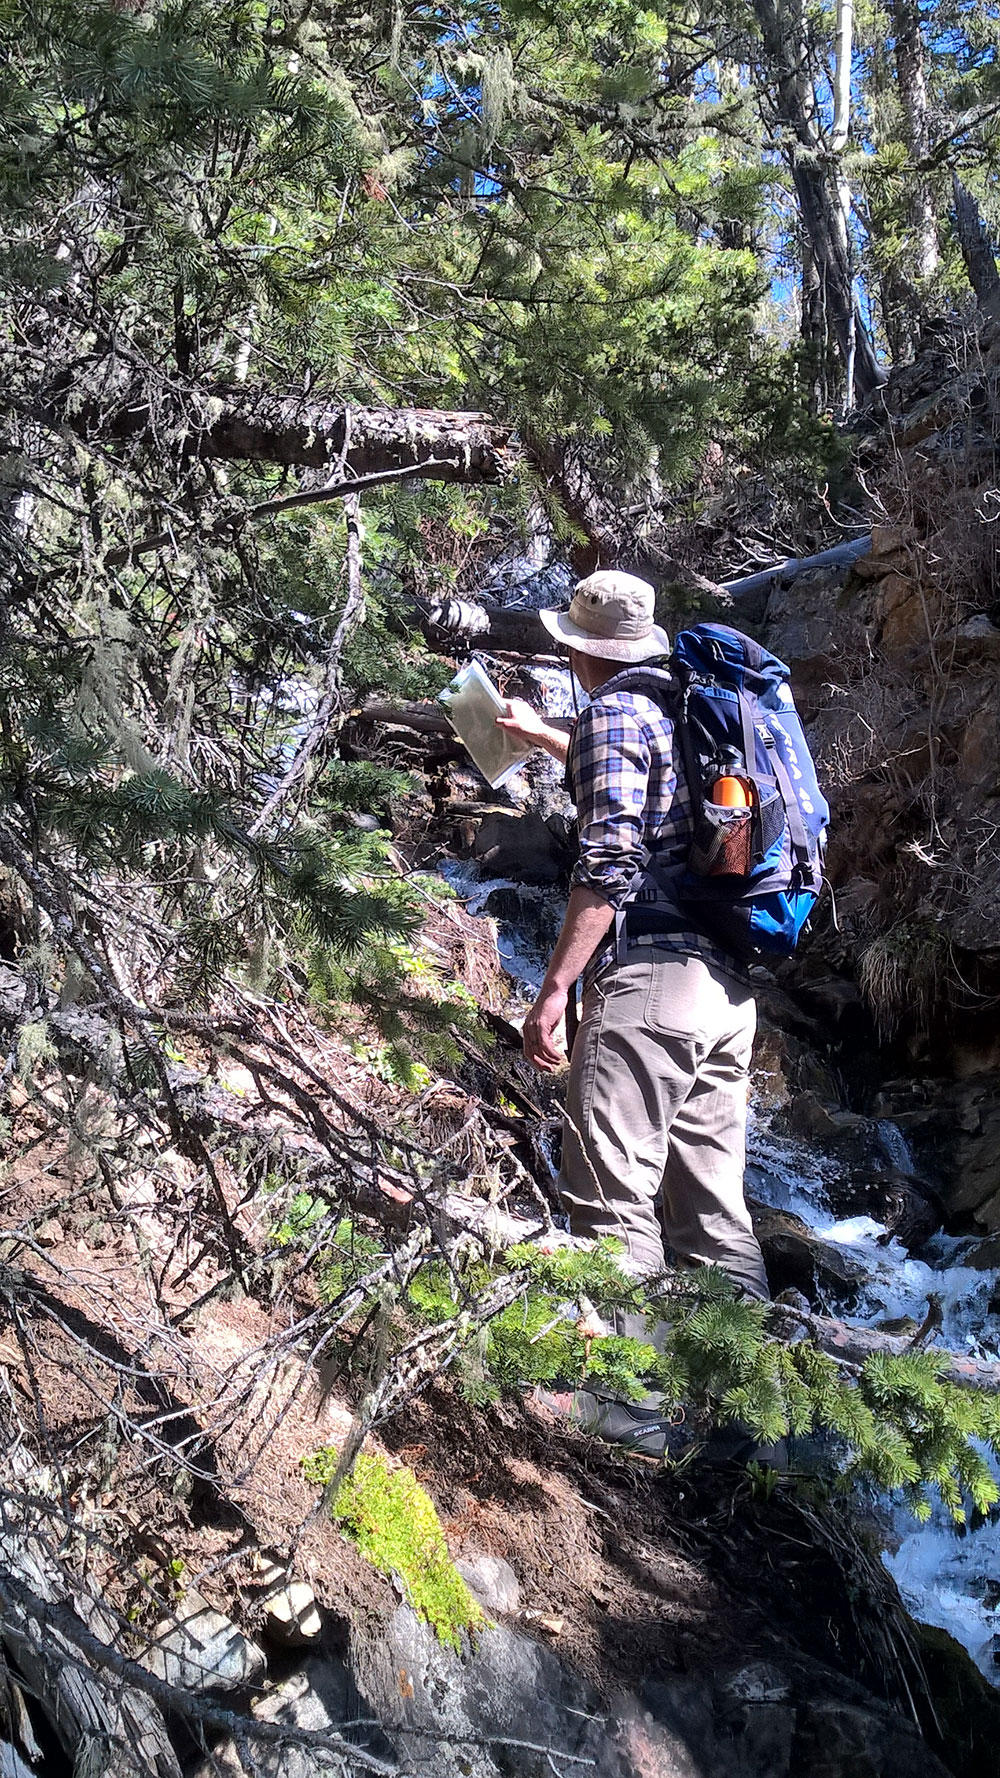 This photo pretty much sums up our hike on Little Castillo. It was steep, thick, uneasy terrain, surrounded with downed limbs. We hiked along a beautiful snowmelt creek that was our constant source of water. Billy is pictured here scouting out a passable approach.